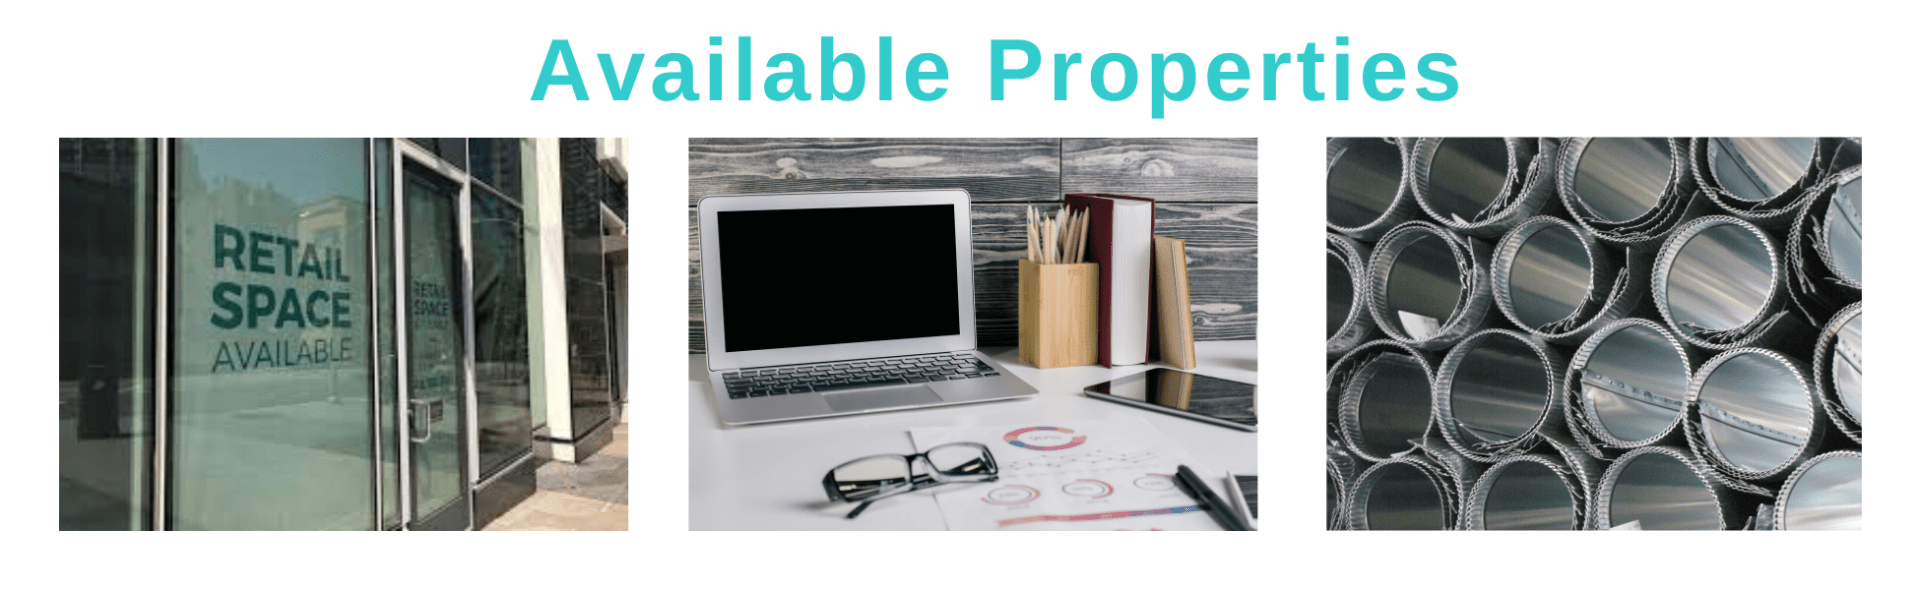 Available-Properties---white-2-high-w1920.png